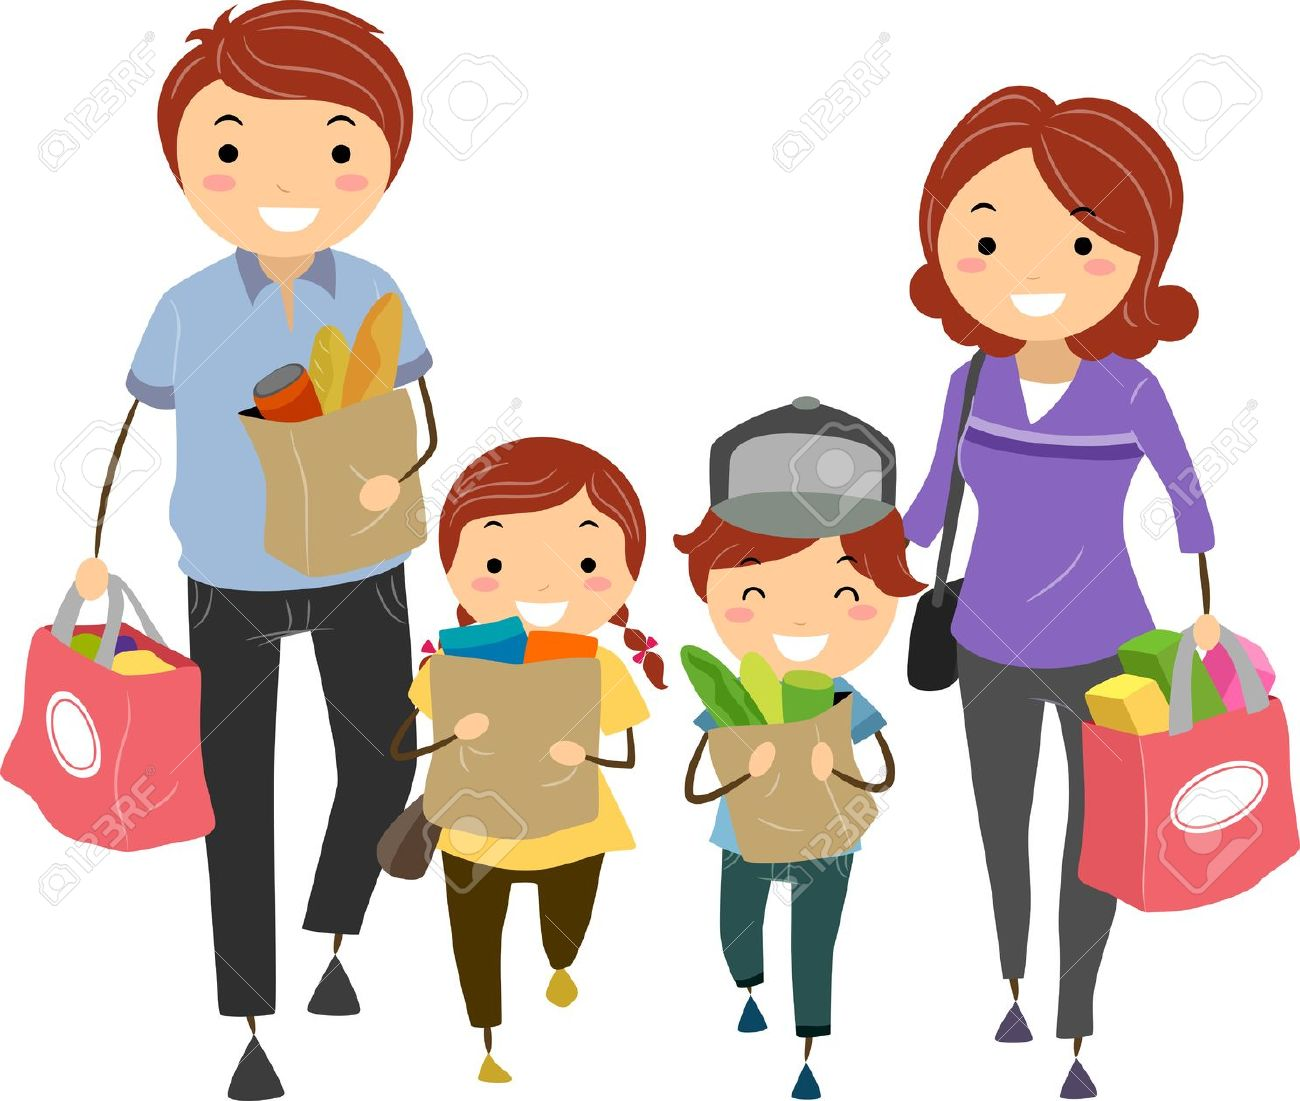 Family Clipart 4 People 2 Daughters info.